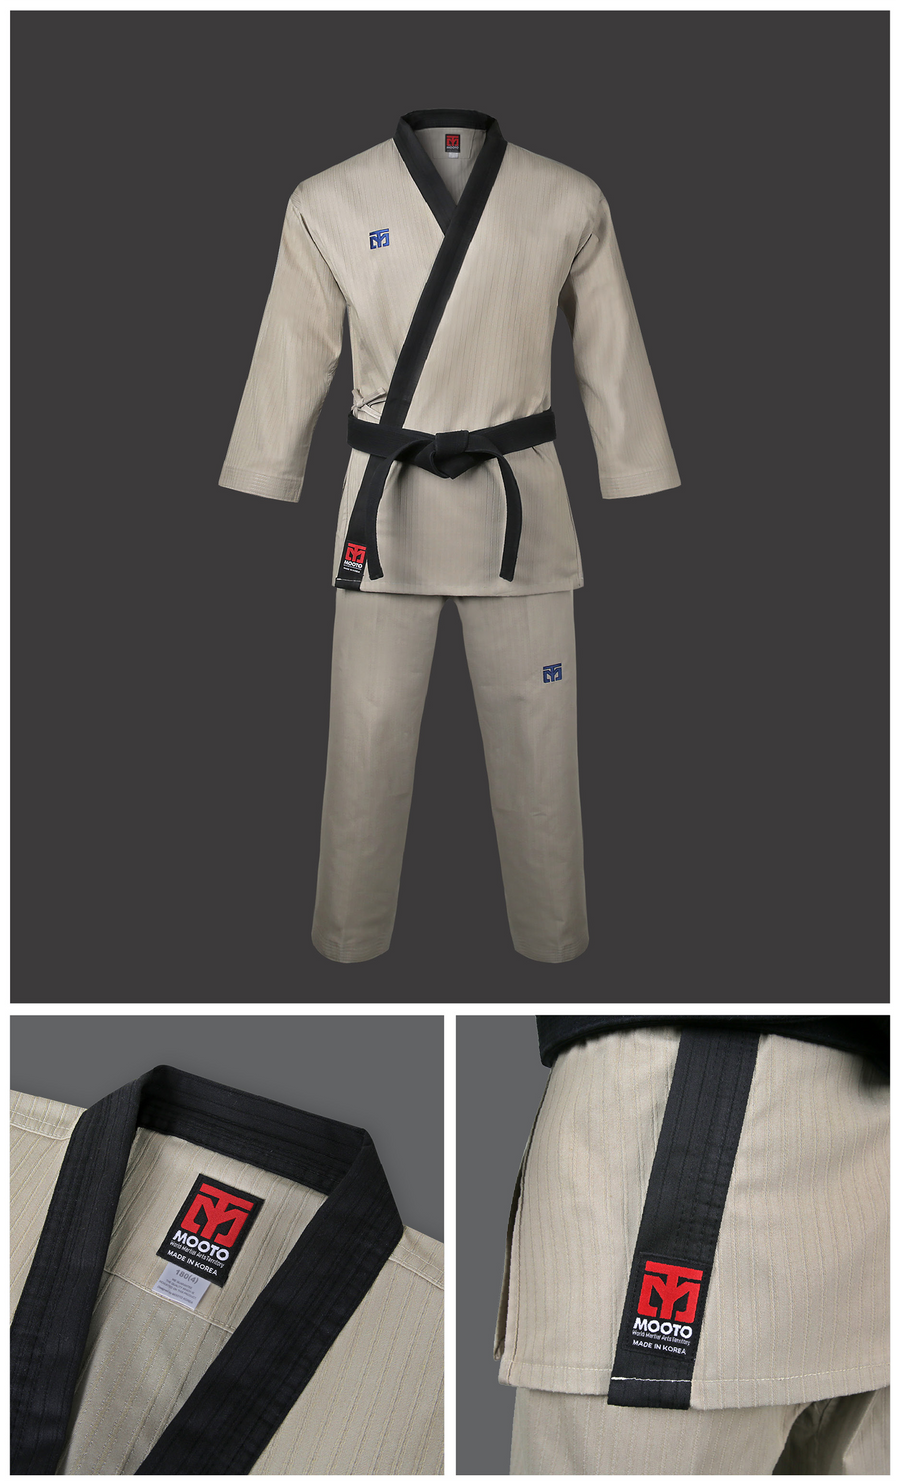 MOOTO Master Open Uniform (Beige)